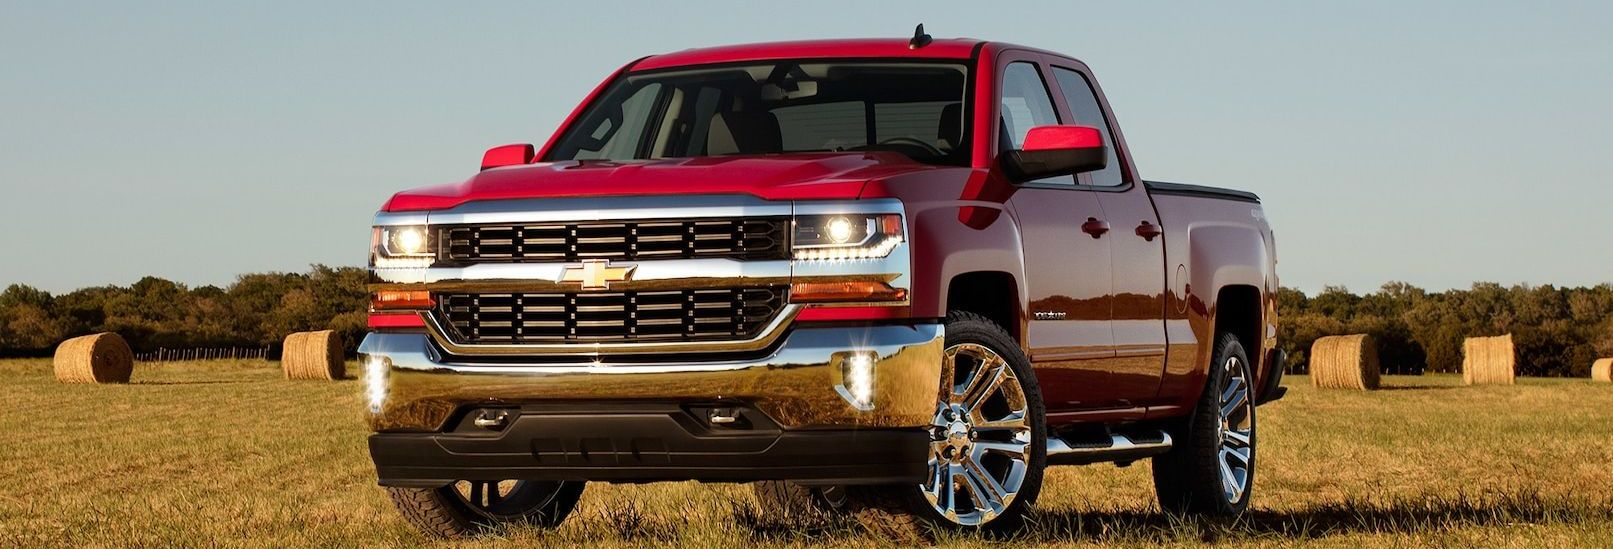 2019 Chevrolet Silverado 1500 for Sale near Dover, PA